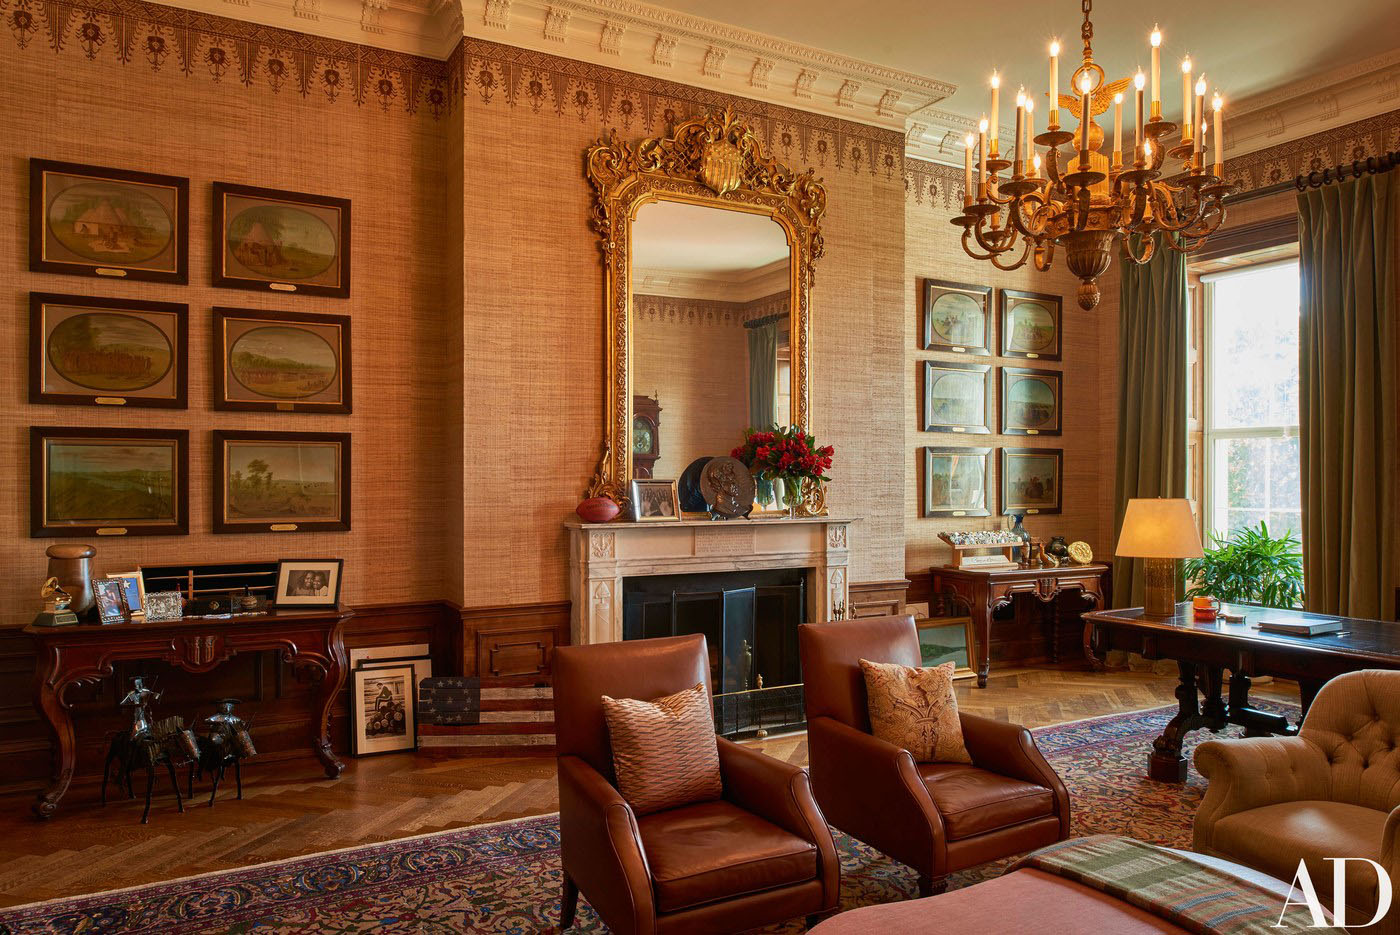 Decor stays within the elegant traditions of the white house while